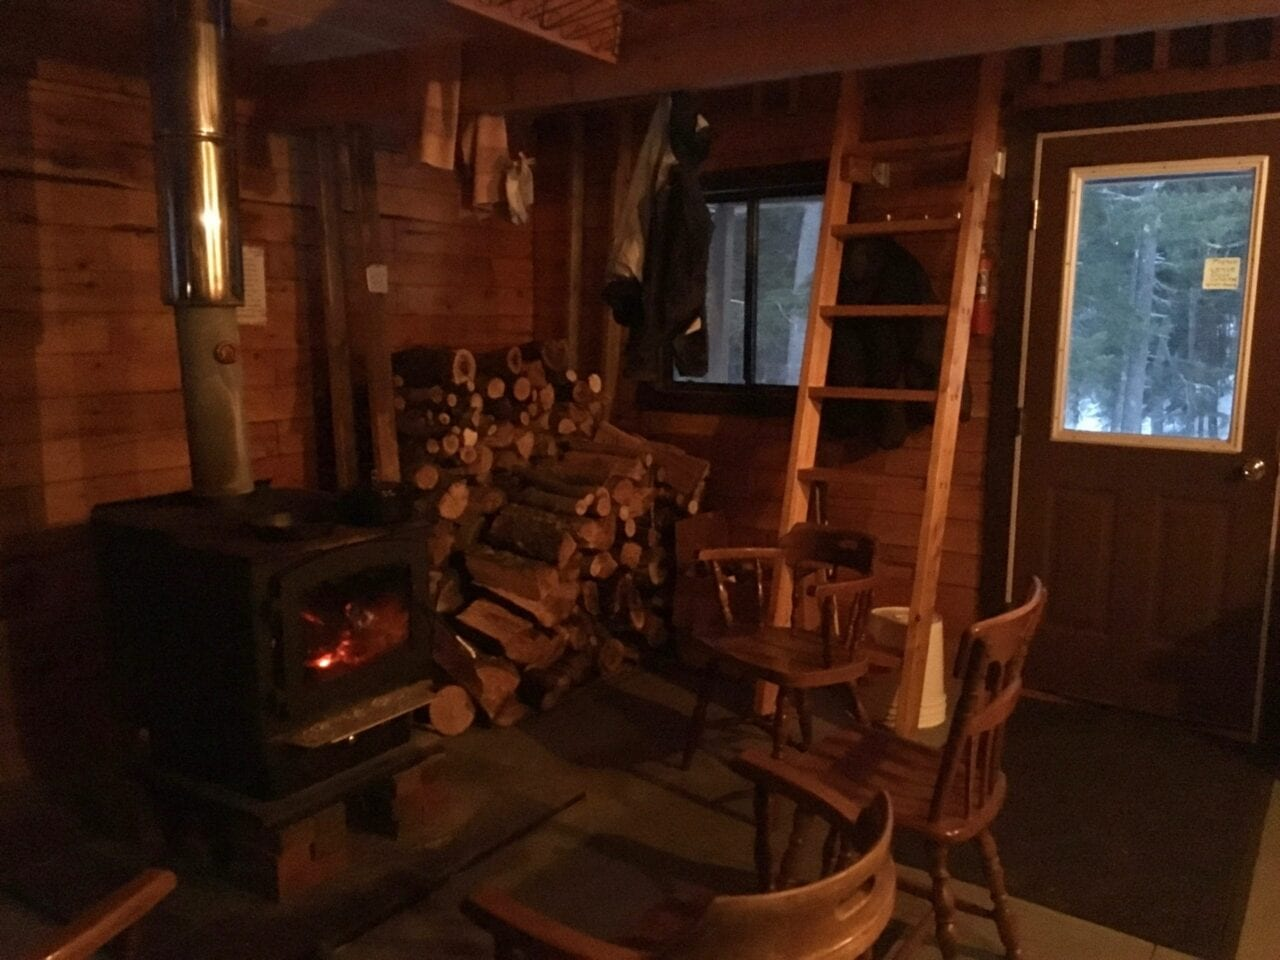 A wood stove and stach of firewood sit inside a rustic cabin.